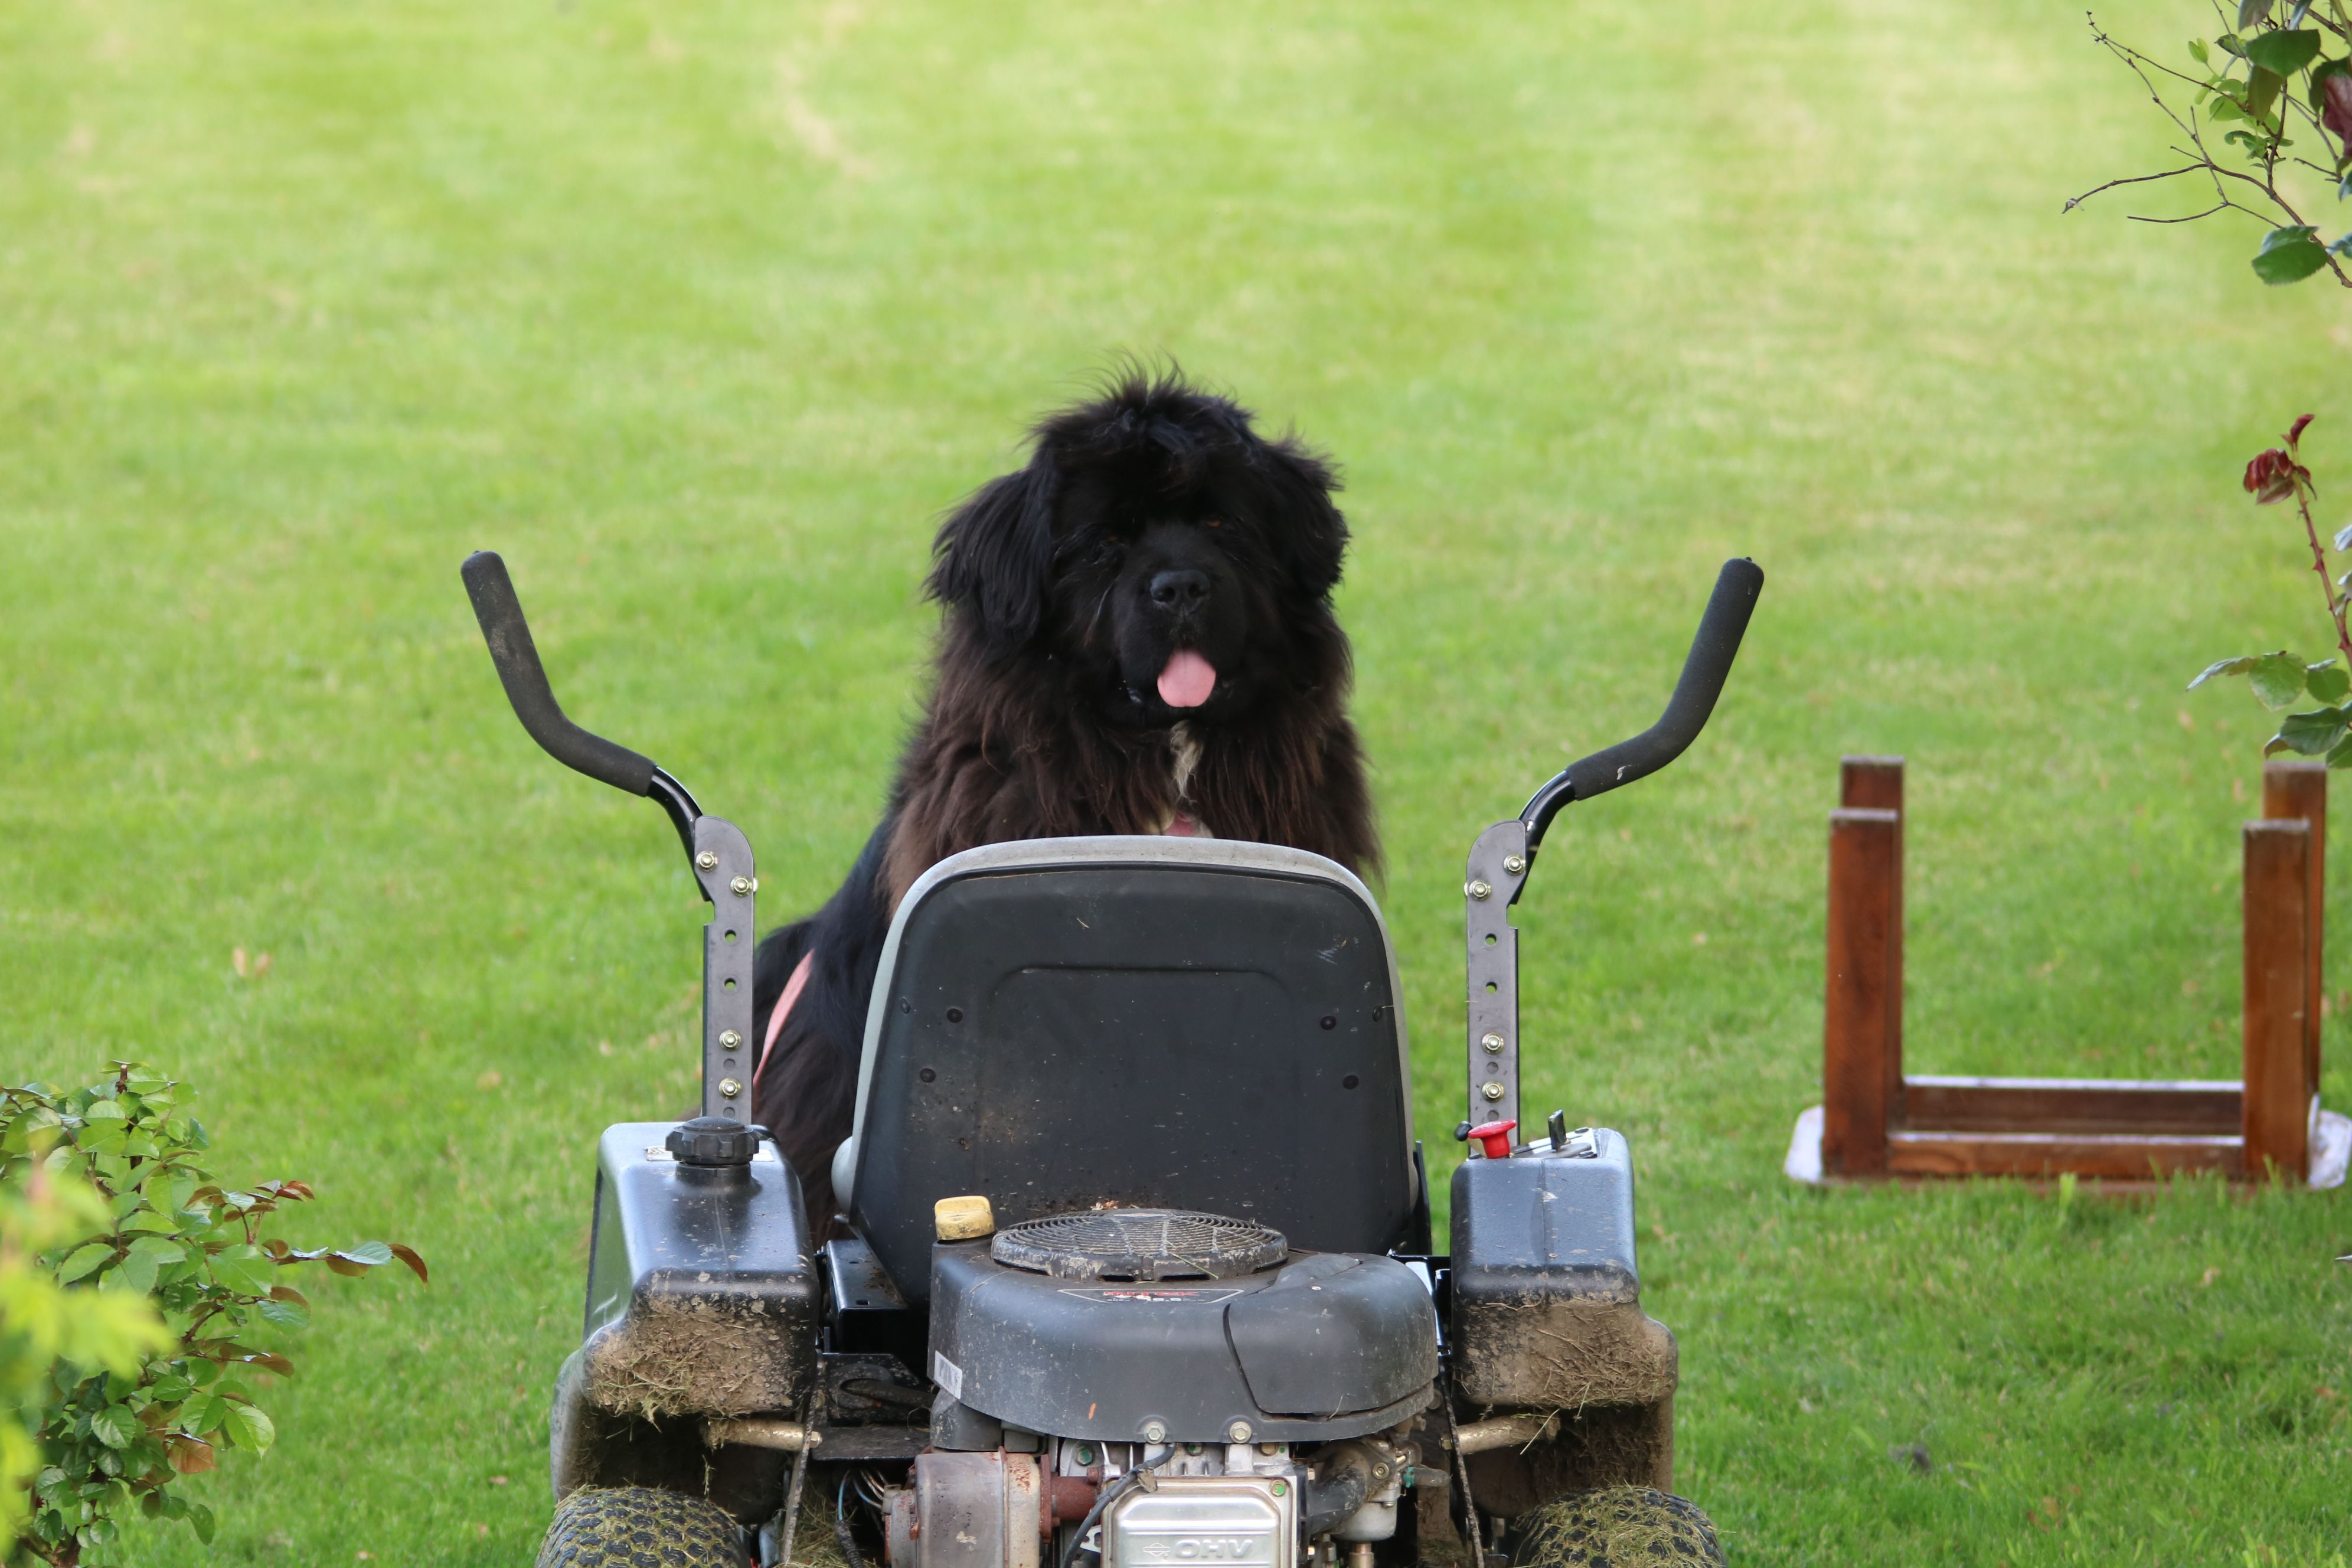 Muffin learning to cut the grass , doesn't have the steering yet